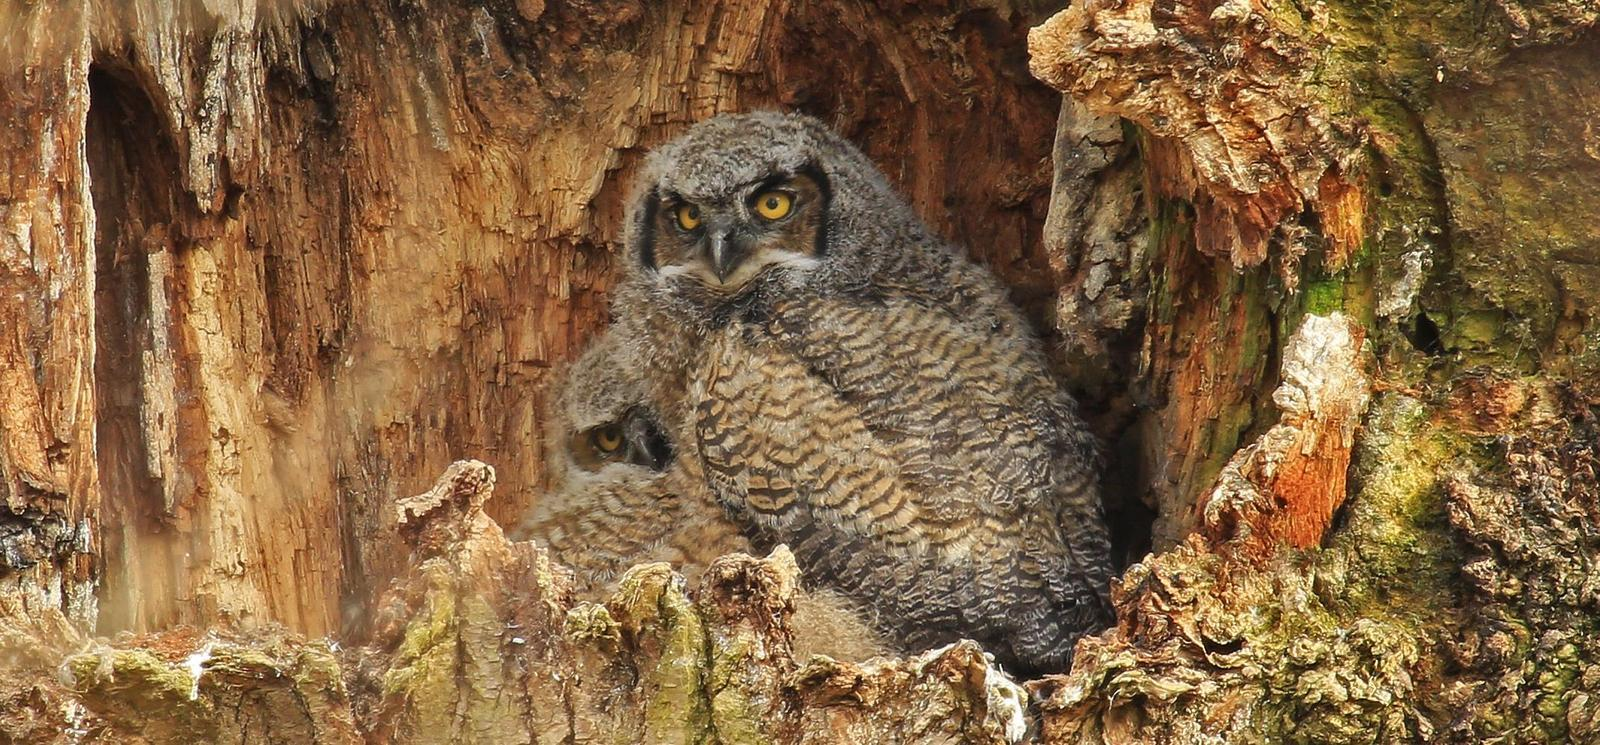 Great Horned Owl Photo by Jim  Murray